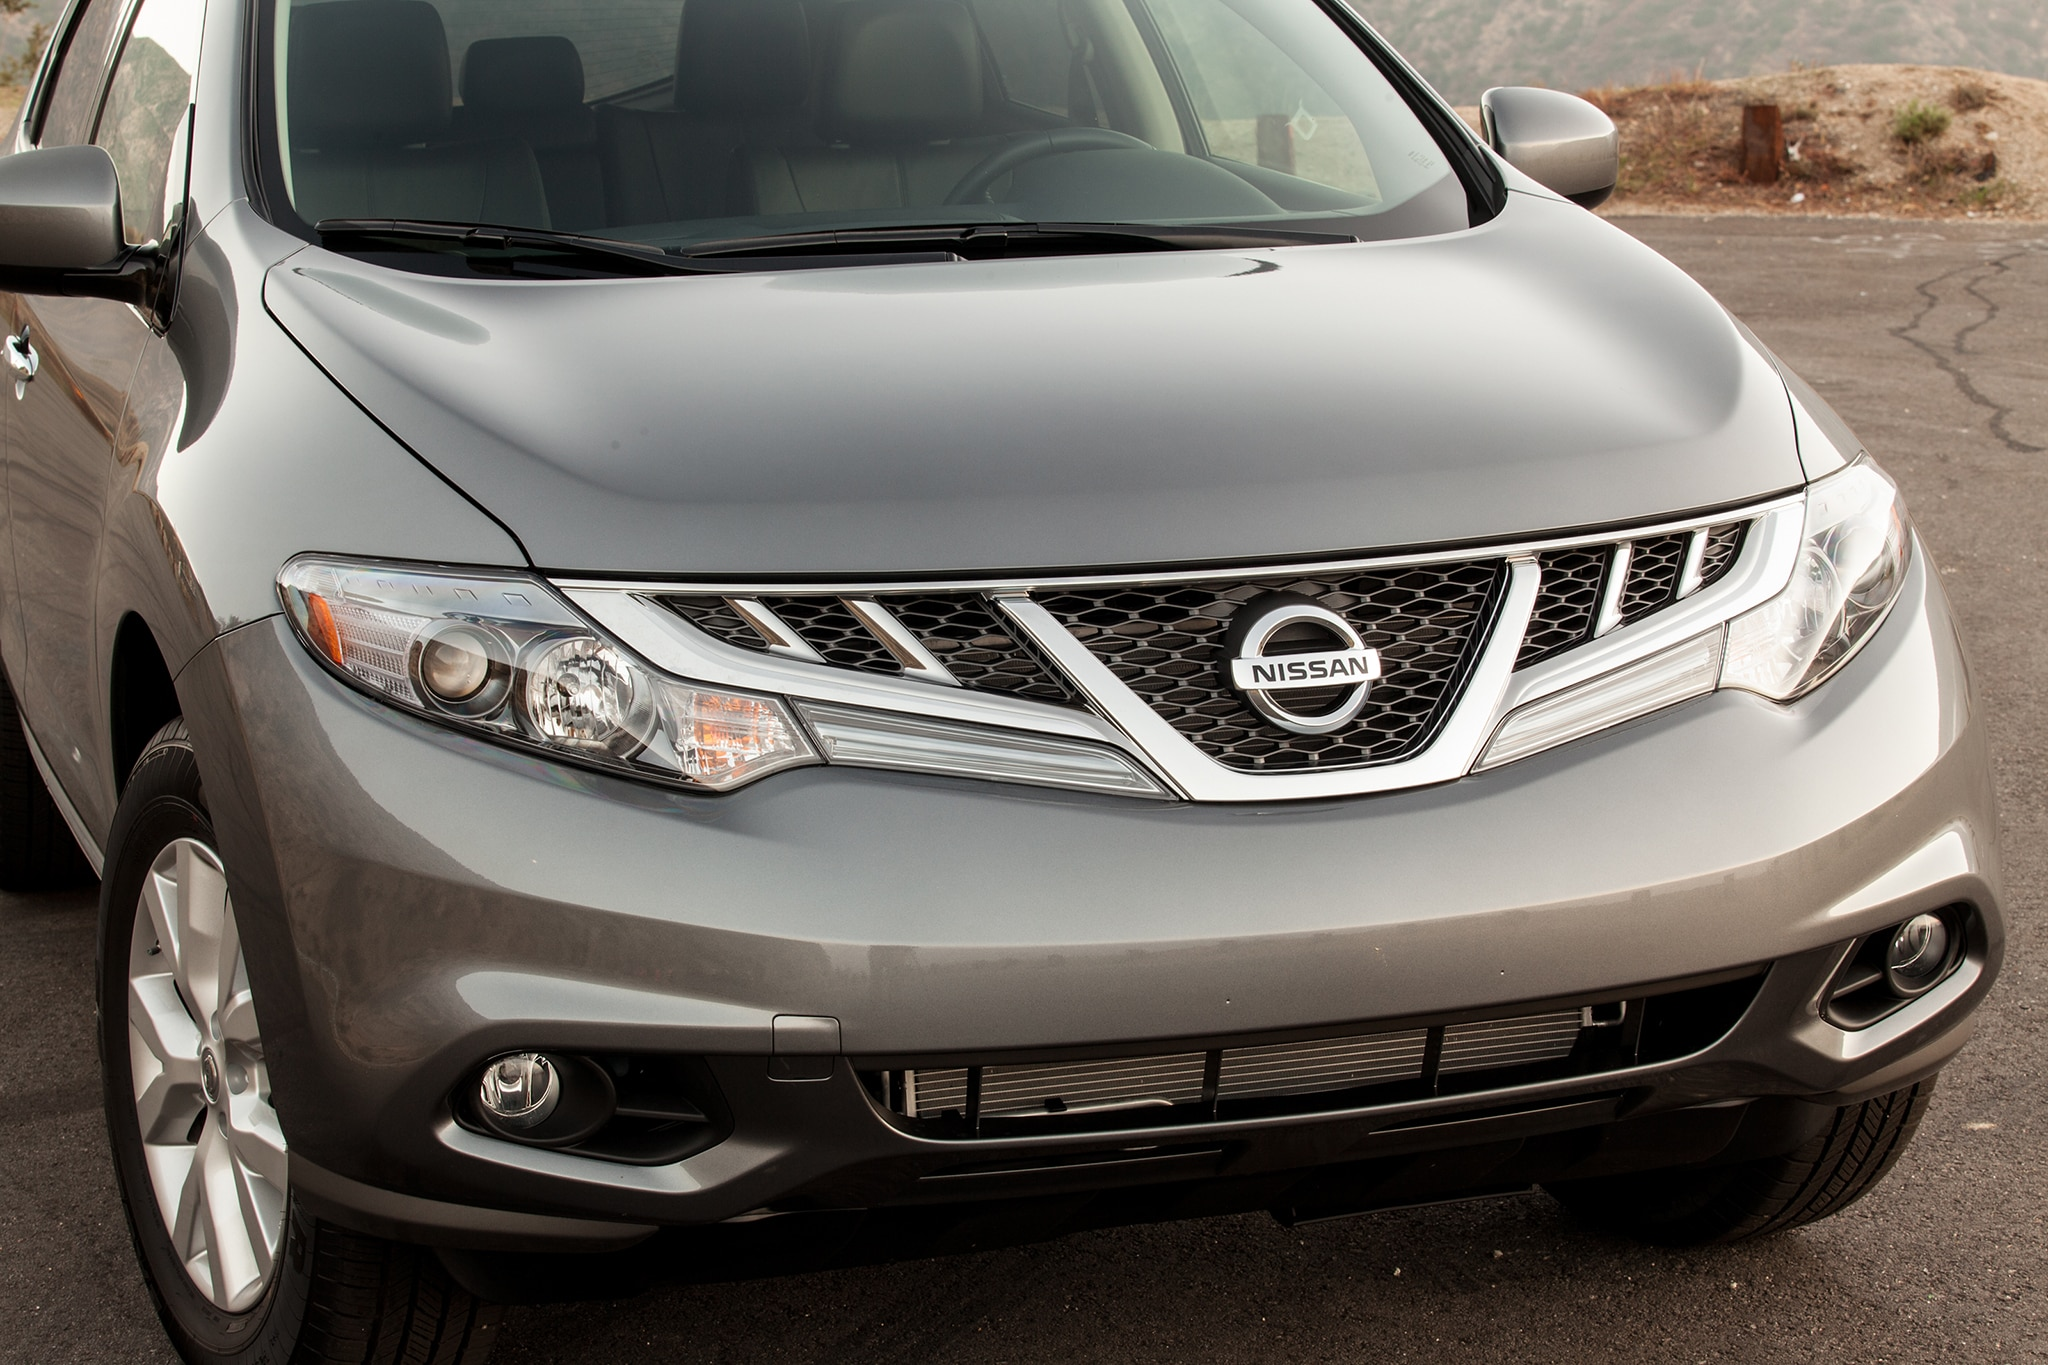 2014 nissan murano pricing unchanged at 29 300. Black Bedroom Furniture Sets. Home Design Ideas